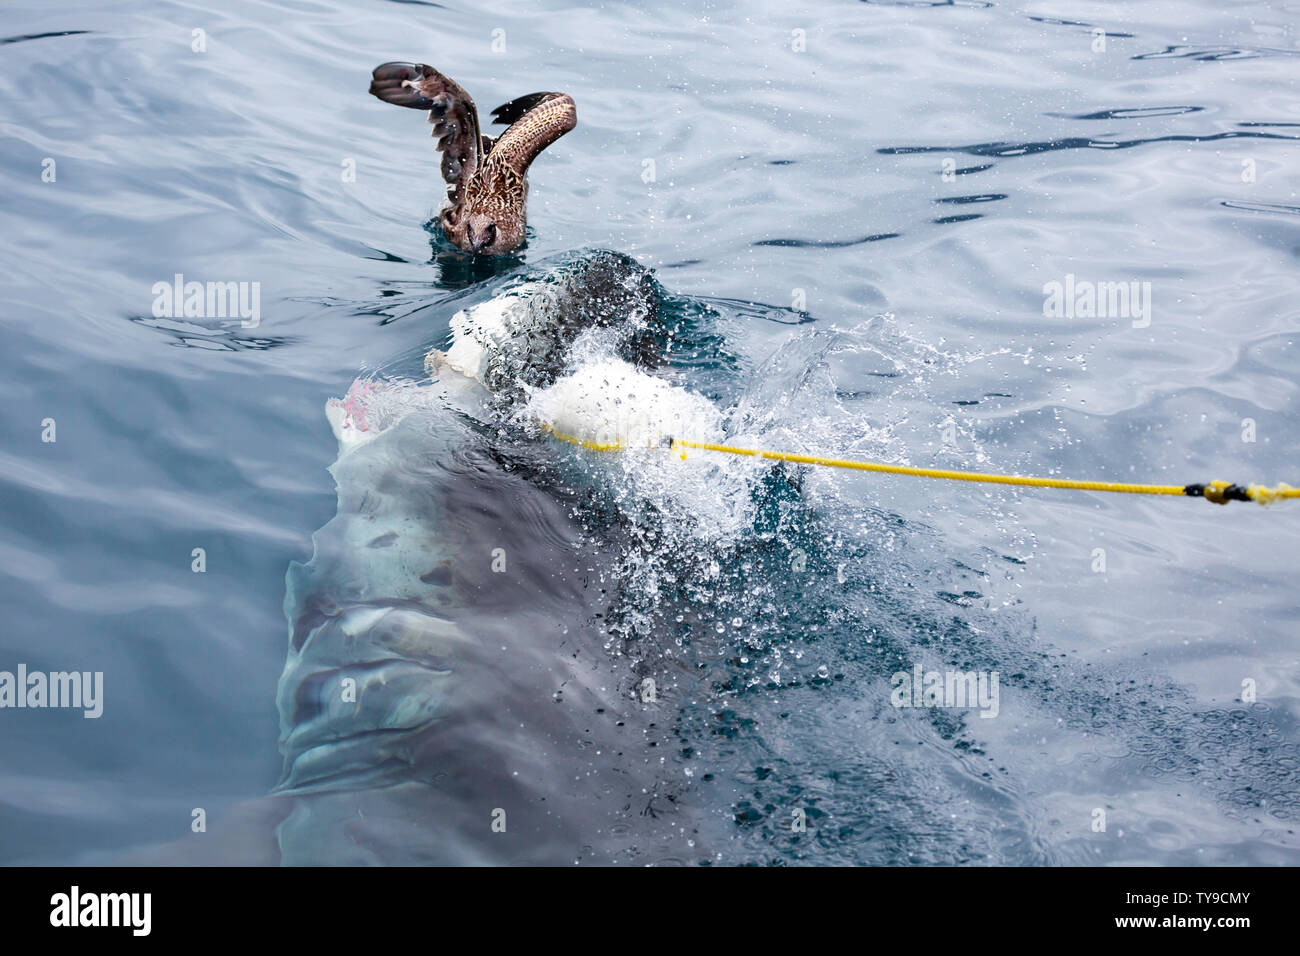 The seagull came very close to being a side dish, when this great white shark, Carcharodon carcharias, took a floating bait during a feeding off Guada - Stock Image